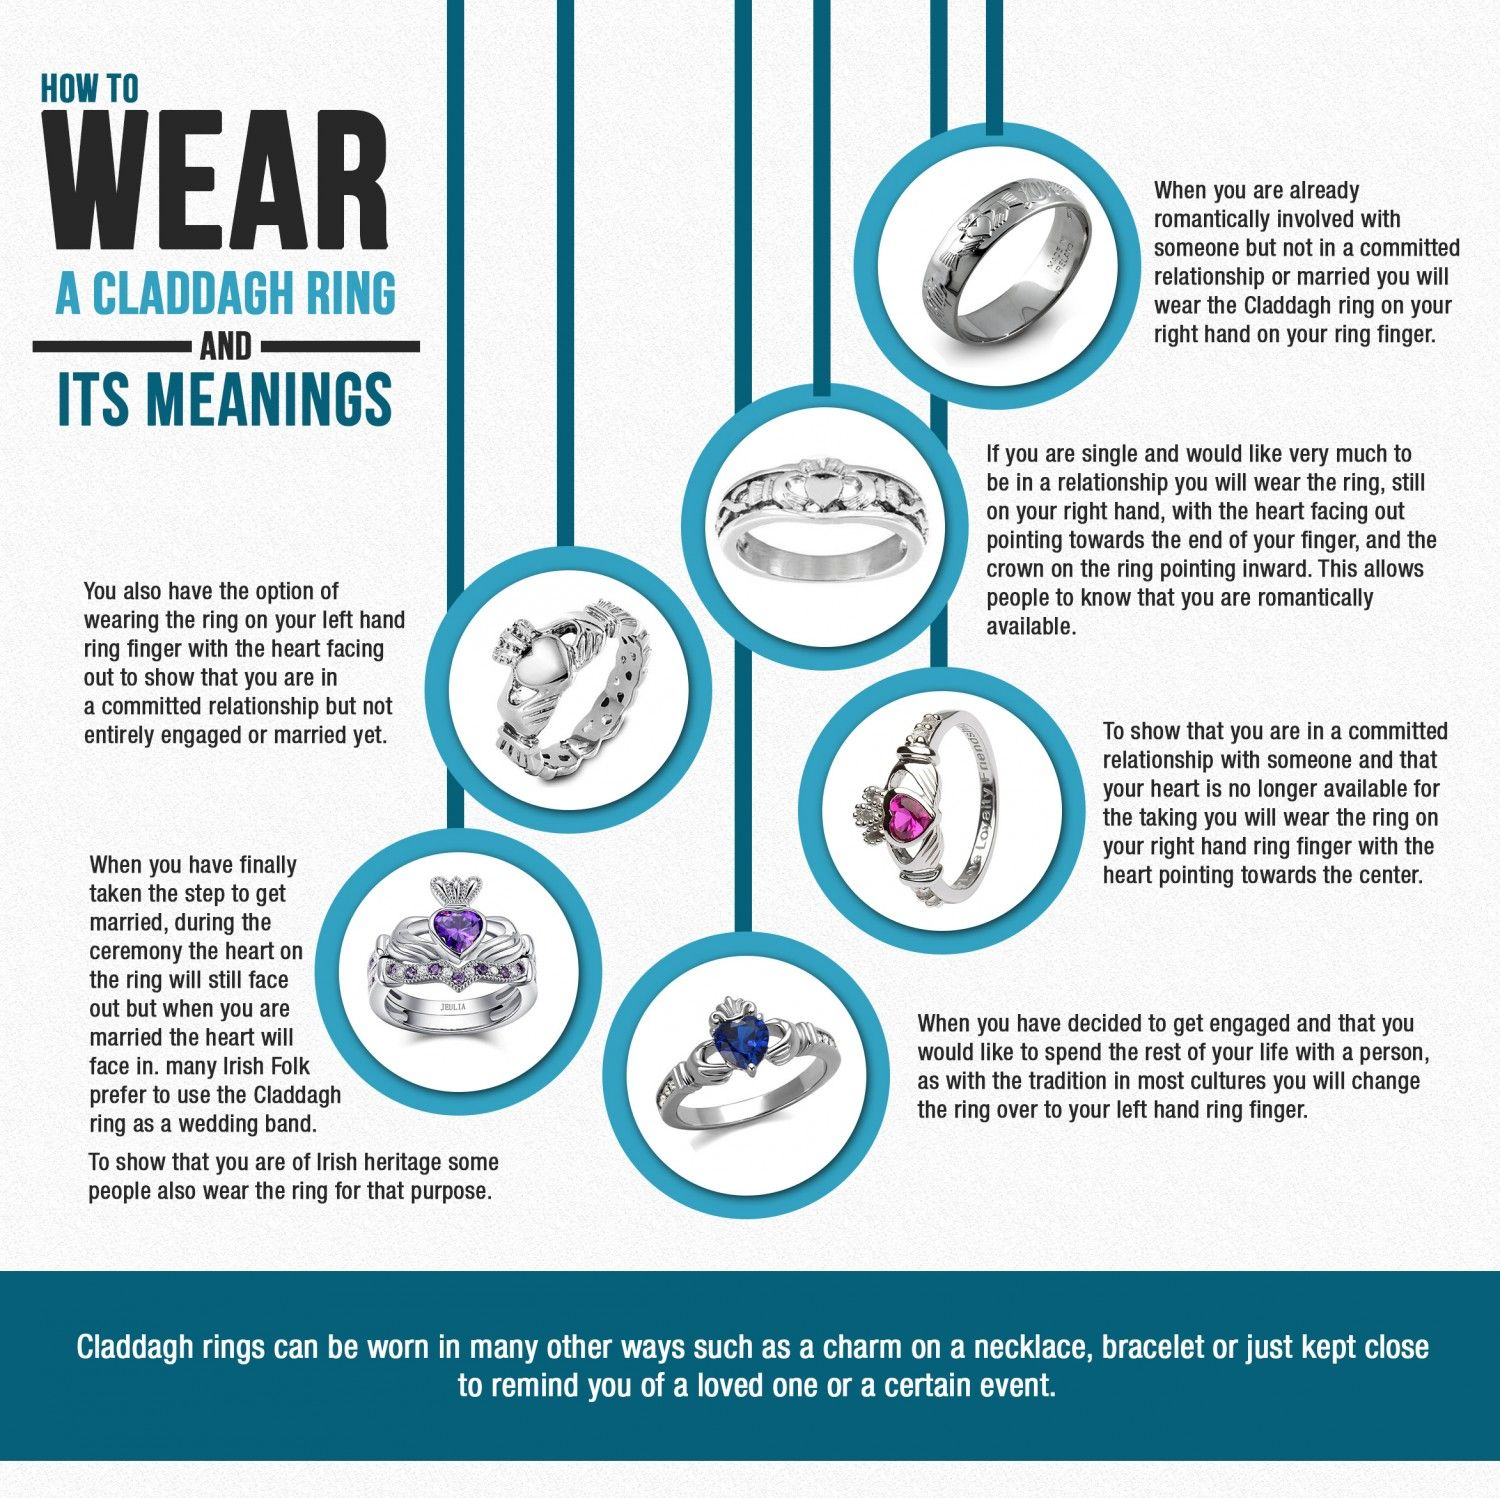 How to wear a claddagh ring infographic